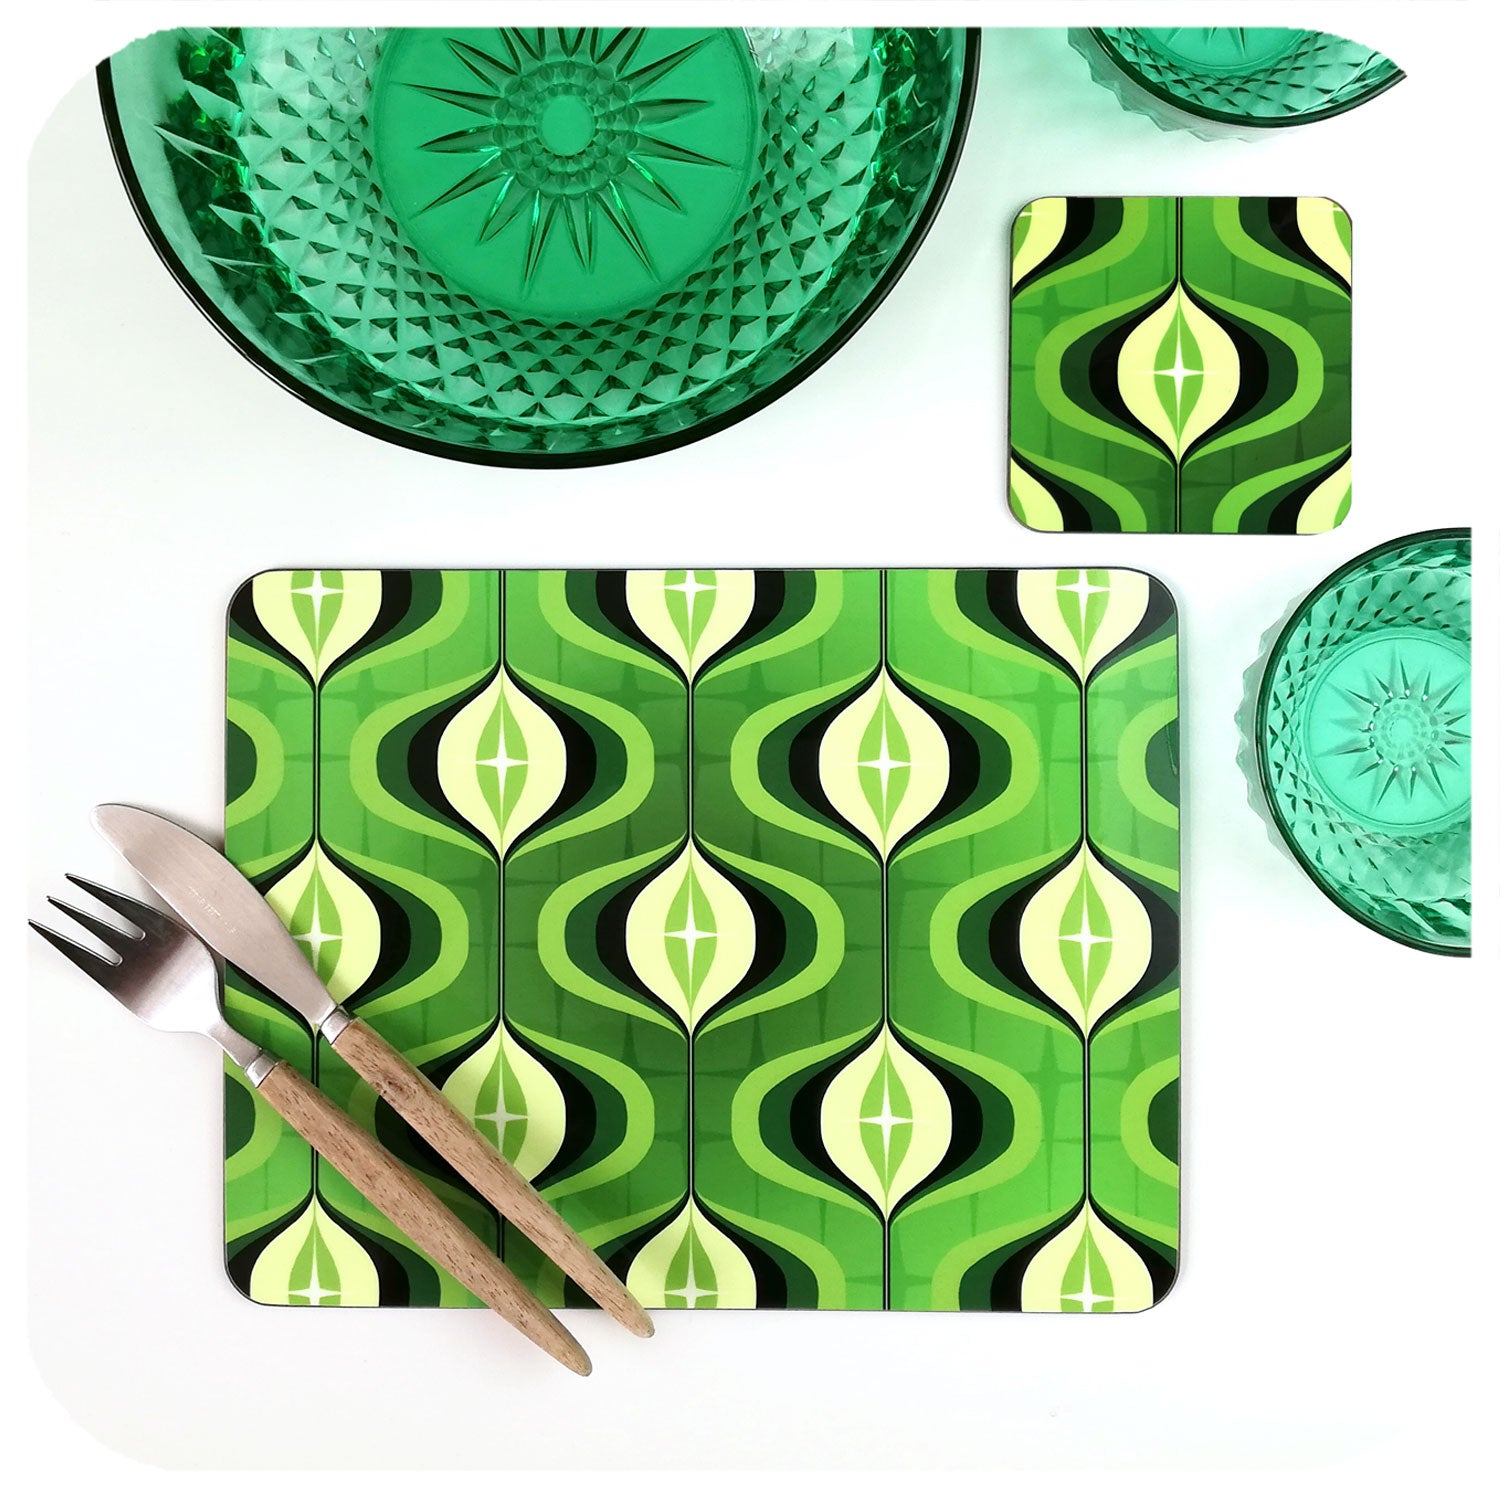 Green 70s Op Art Placemat and Coaster Set | The Inkabilly Emporium